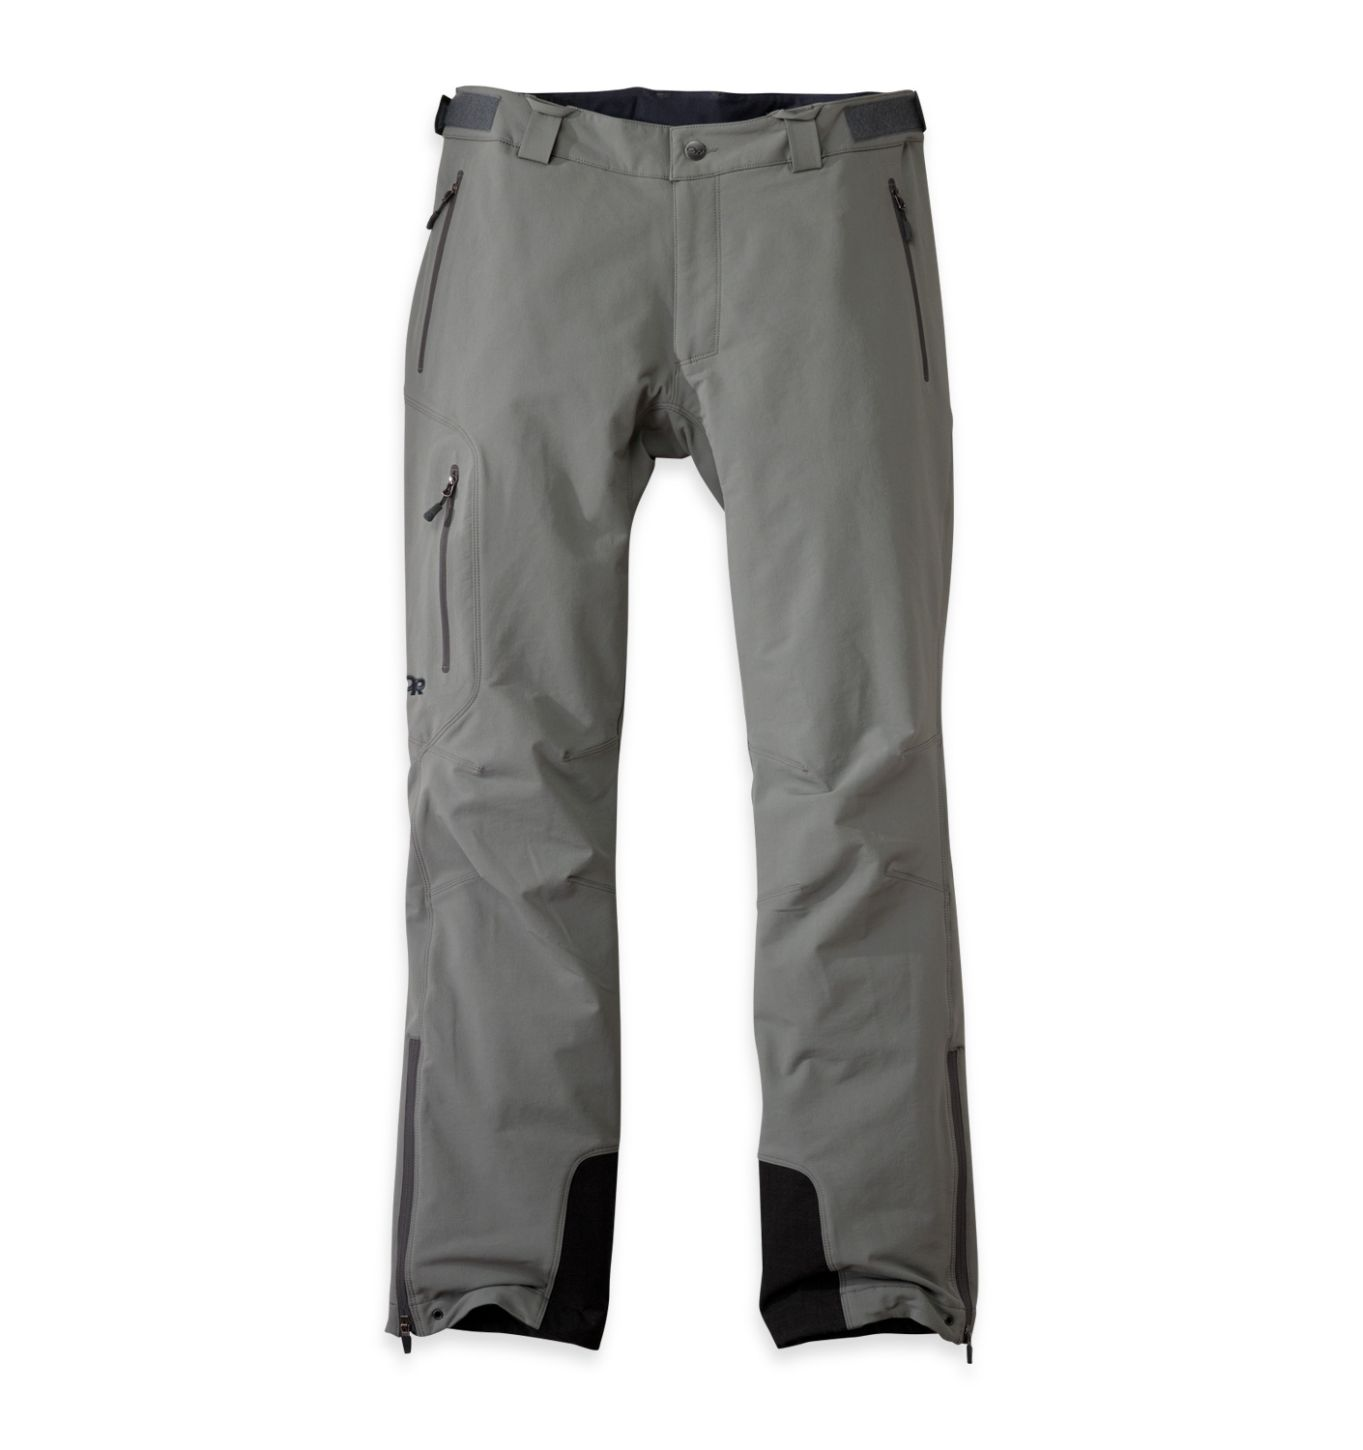 Outdoor Research Men's Cirque Pants pewter-30